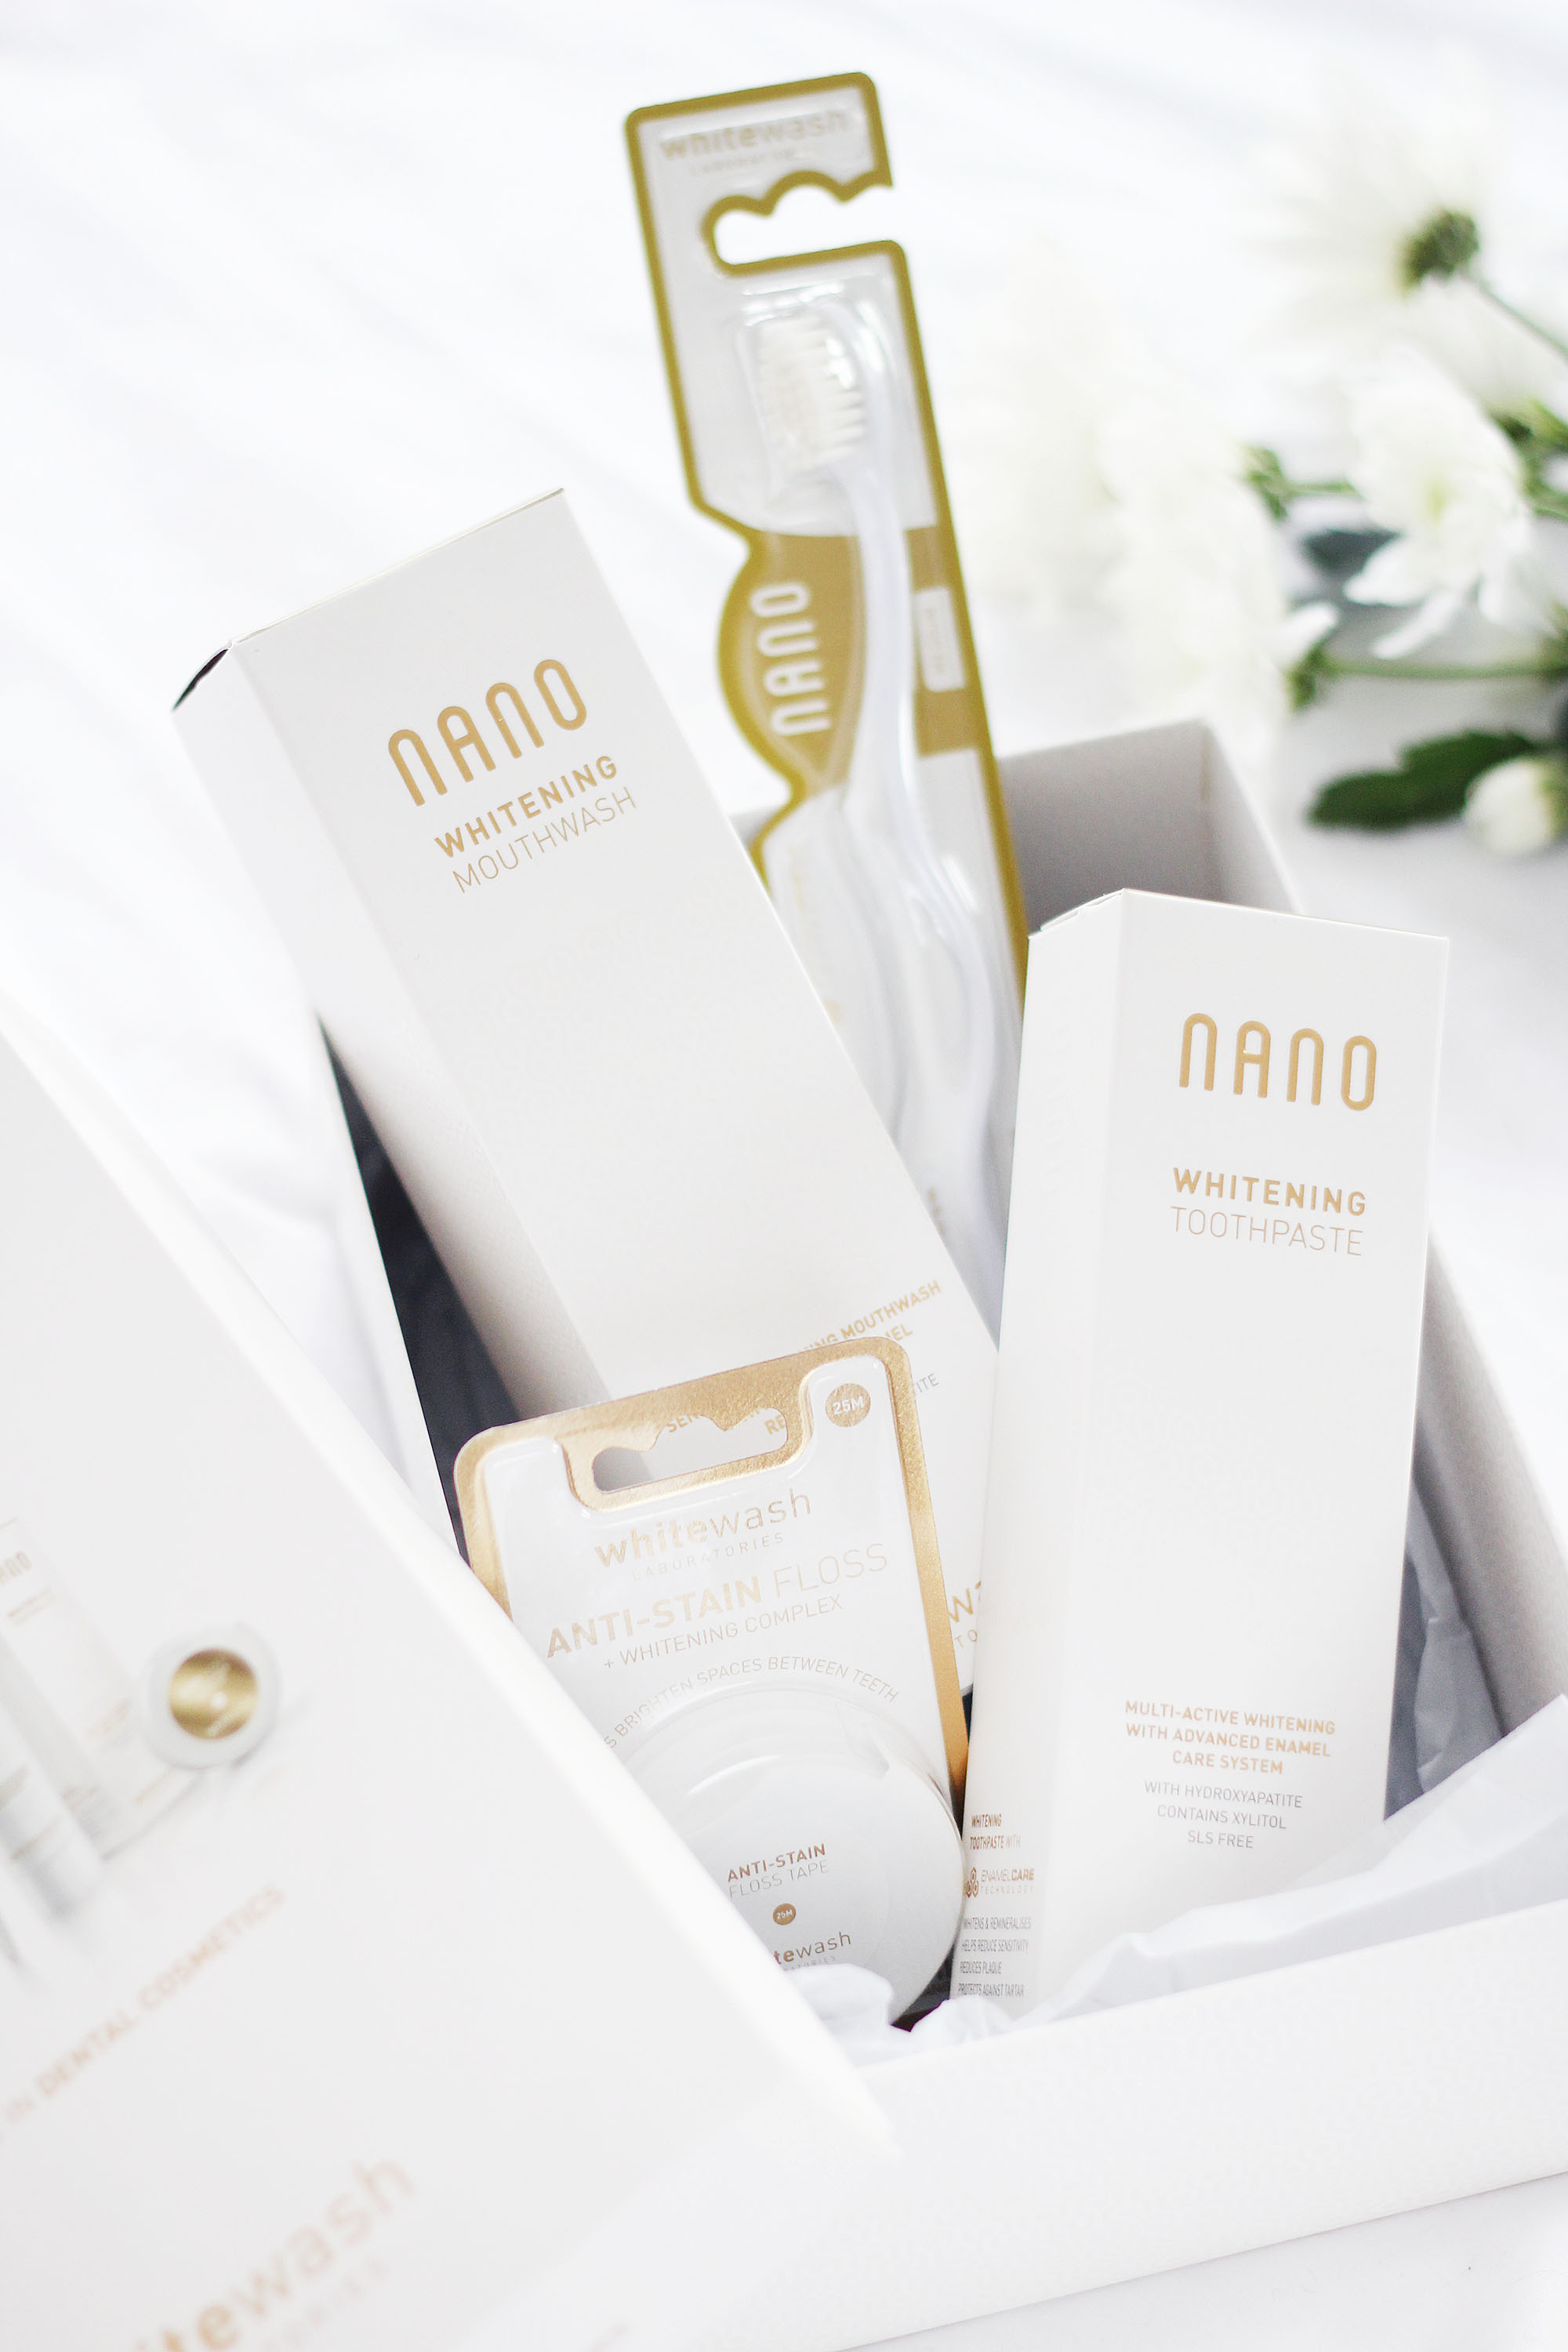 Teeth Whitening With WhiteWash Nano - Beauty and the Chic